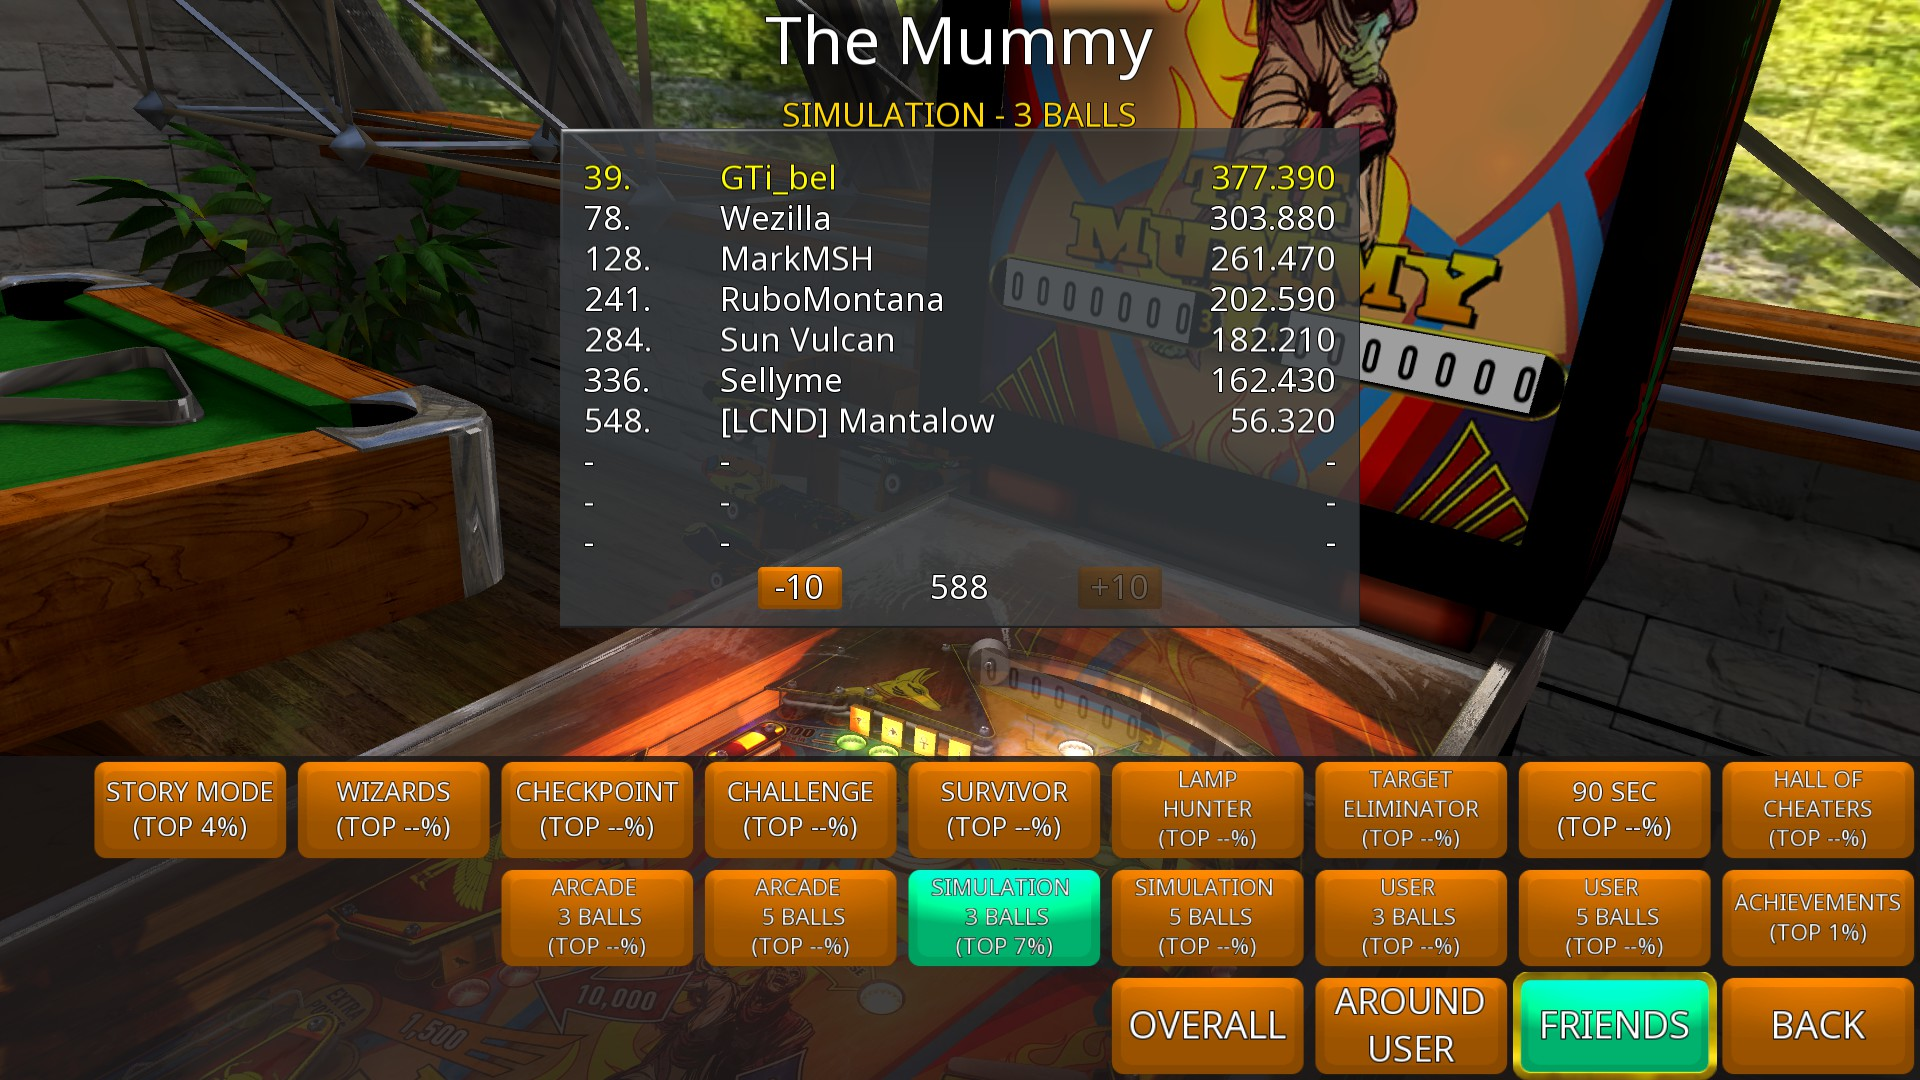 GTibel: Zaccaria Pinball: The Mummy [3 balls] (PC) 377,390 points on 2018-10-01 01:57:14